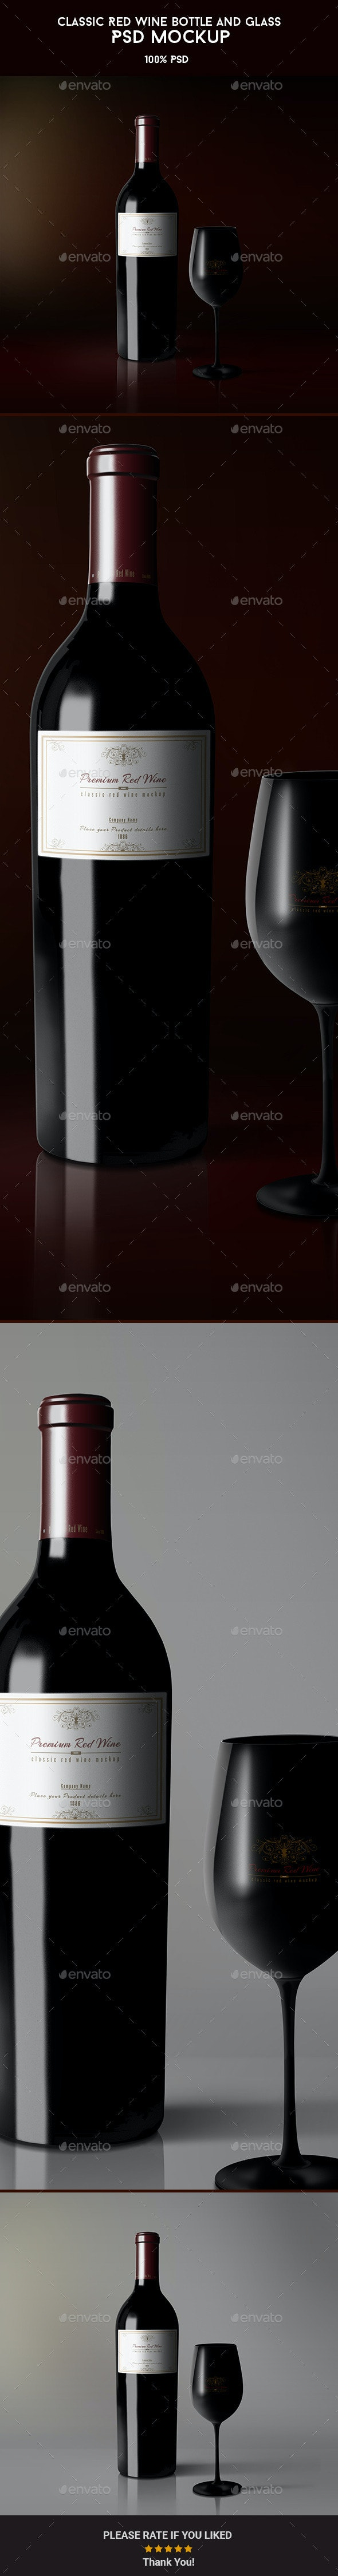 Classic Red Wine Bottle and Glass Mockup - Food and Drink Packaging